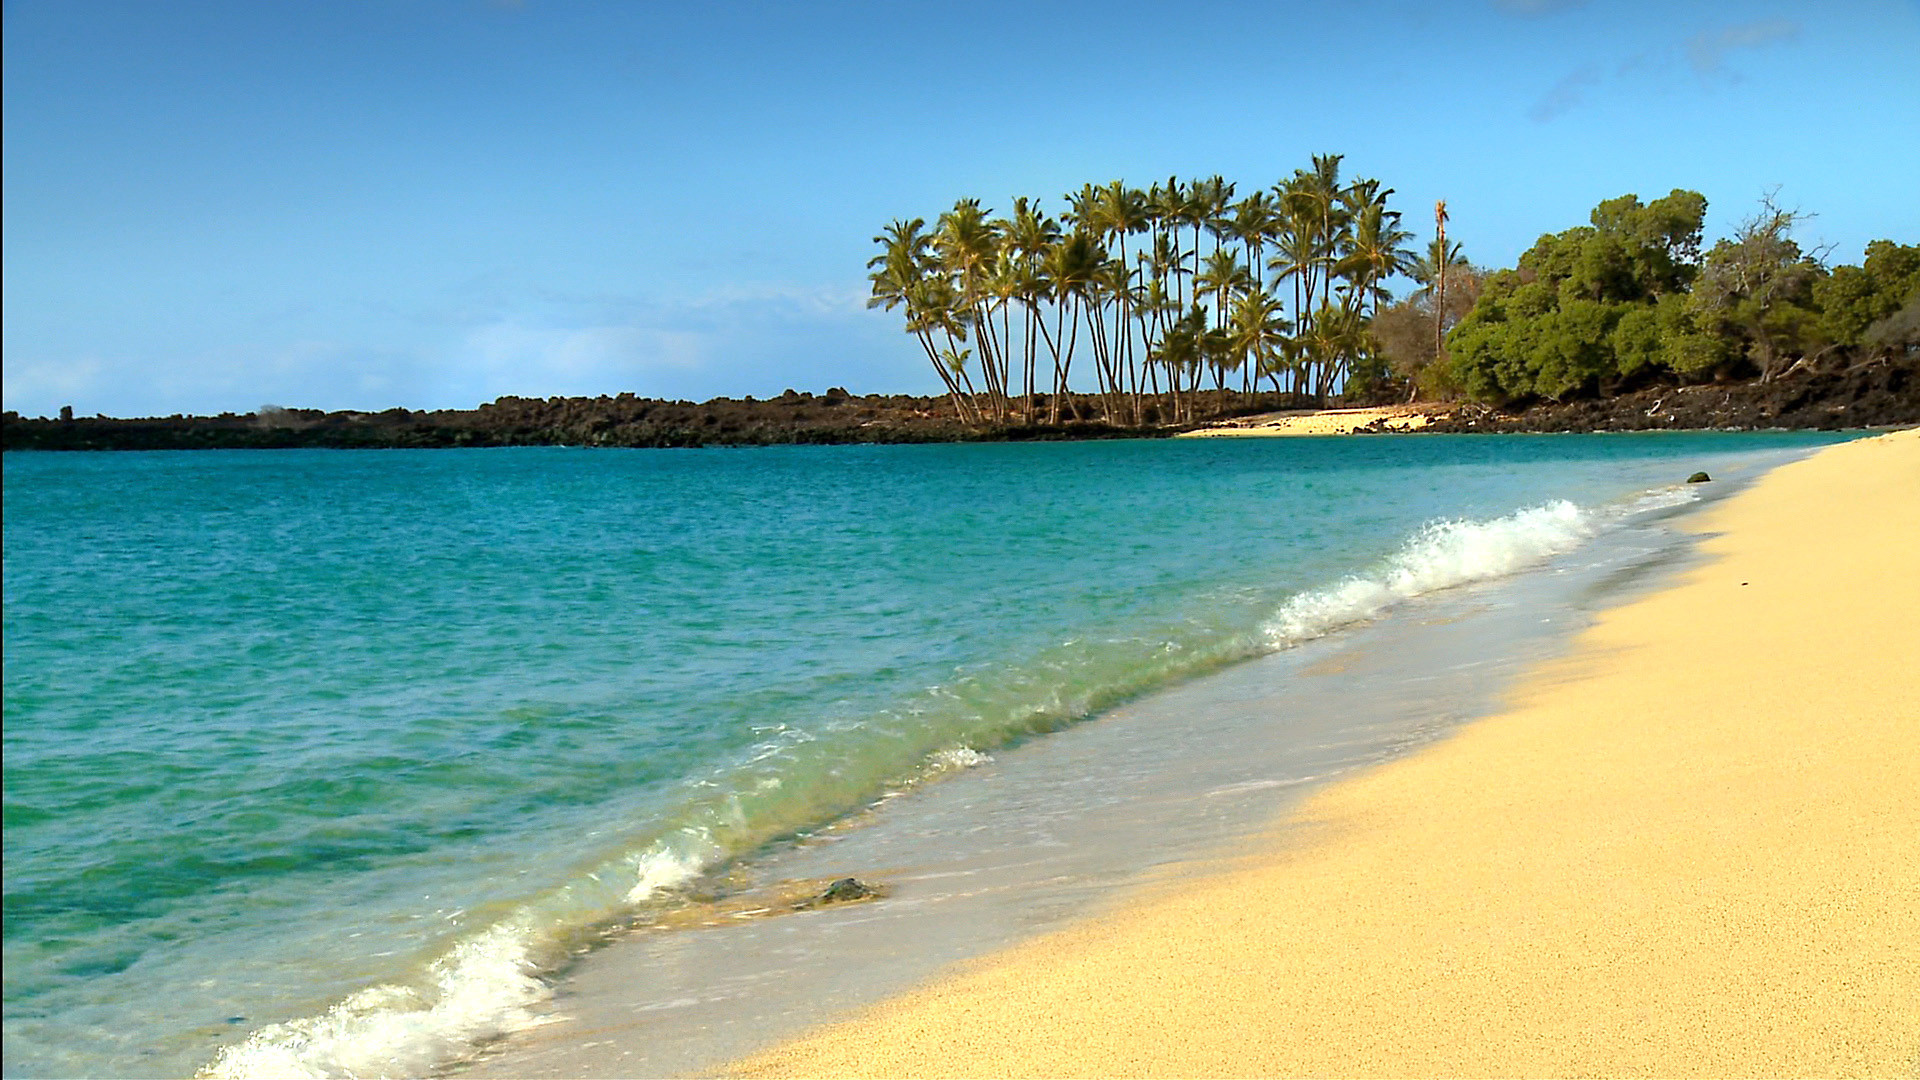 Hawaii Beach Wallpaper Hd Free: Hawaii Beaches Wallpaper (52+ Images